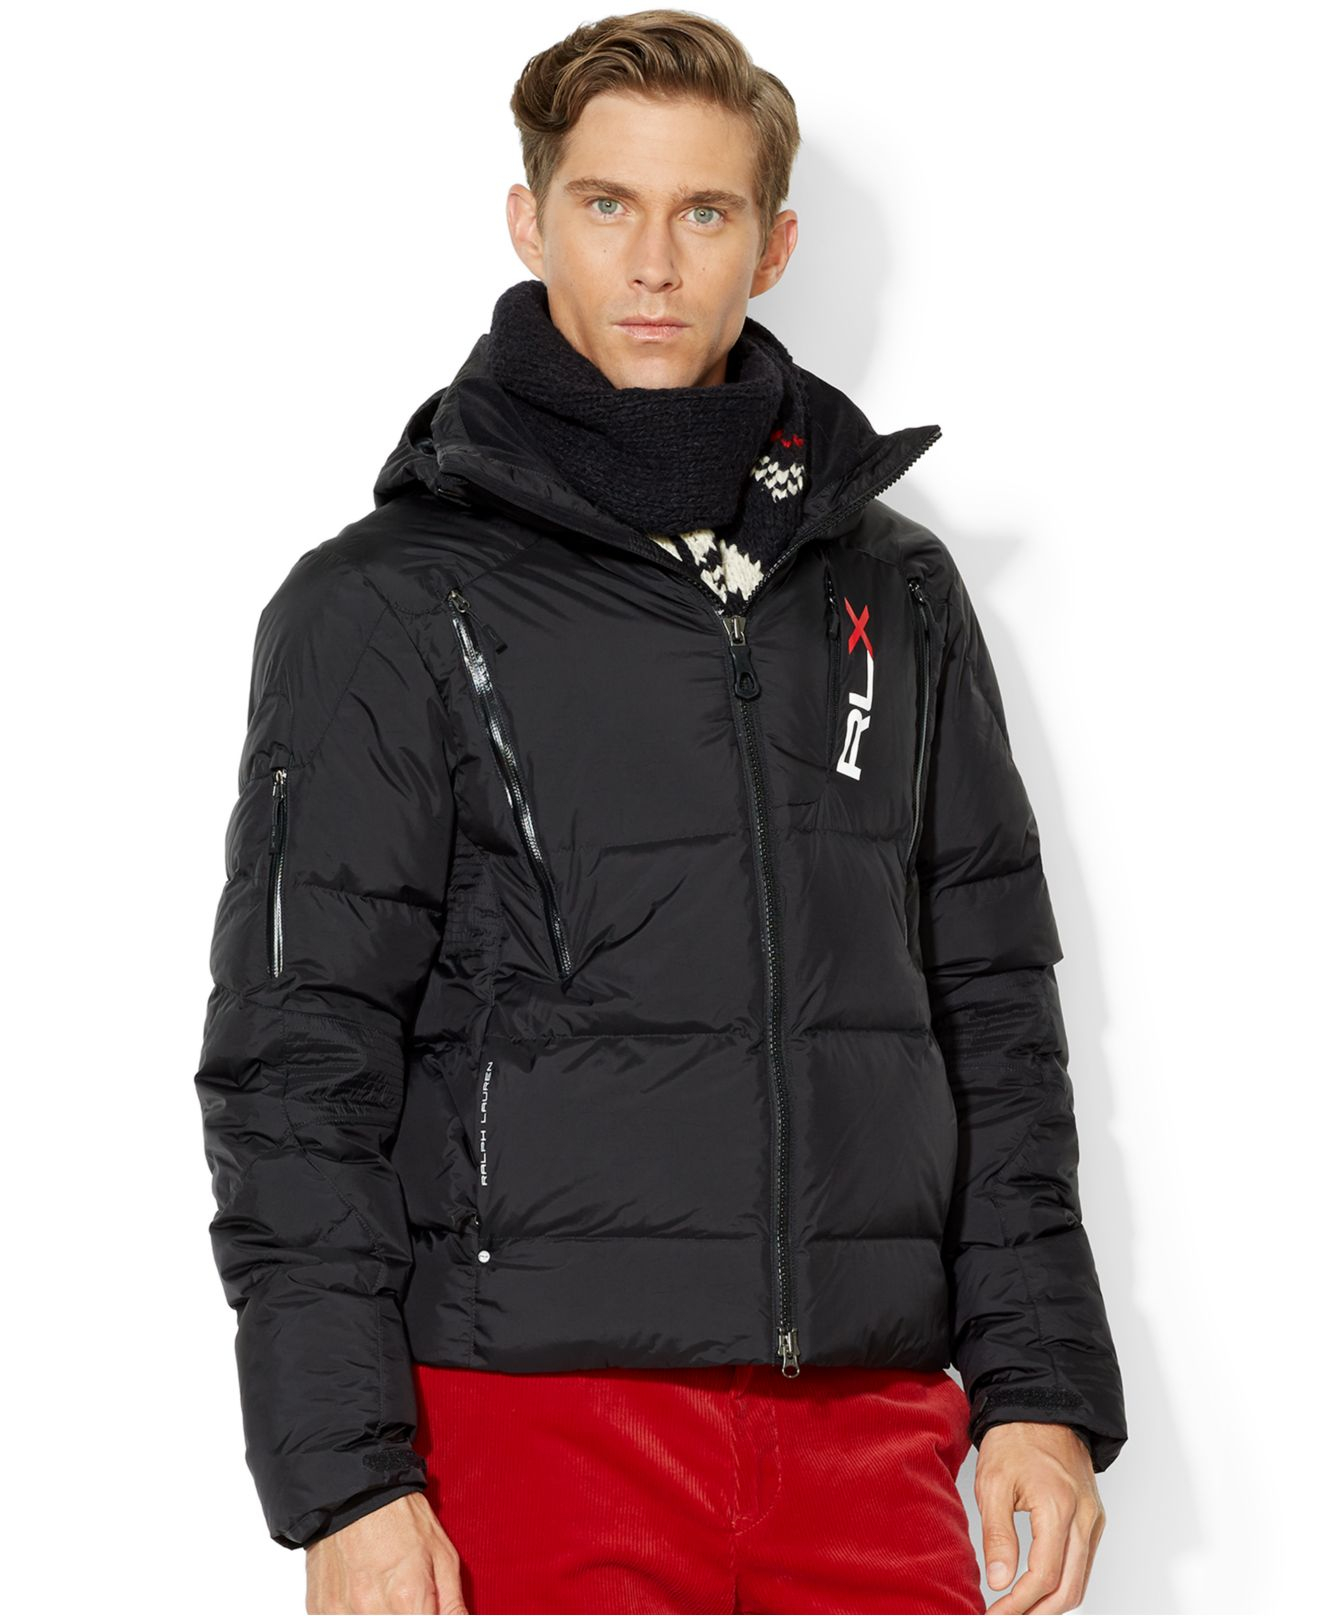 polo ralph lauren rlx quilted down jacket in black for men. Black Bedroom Furniture Sets. Home Design Ideas